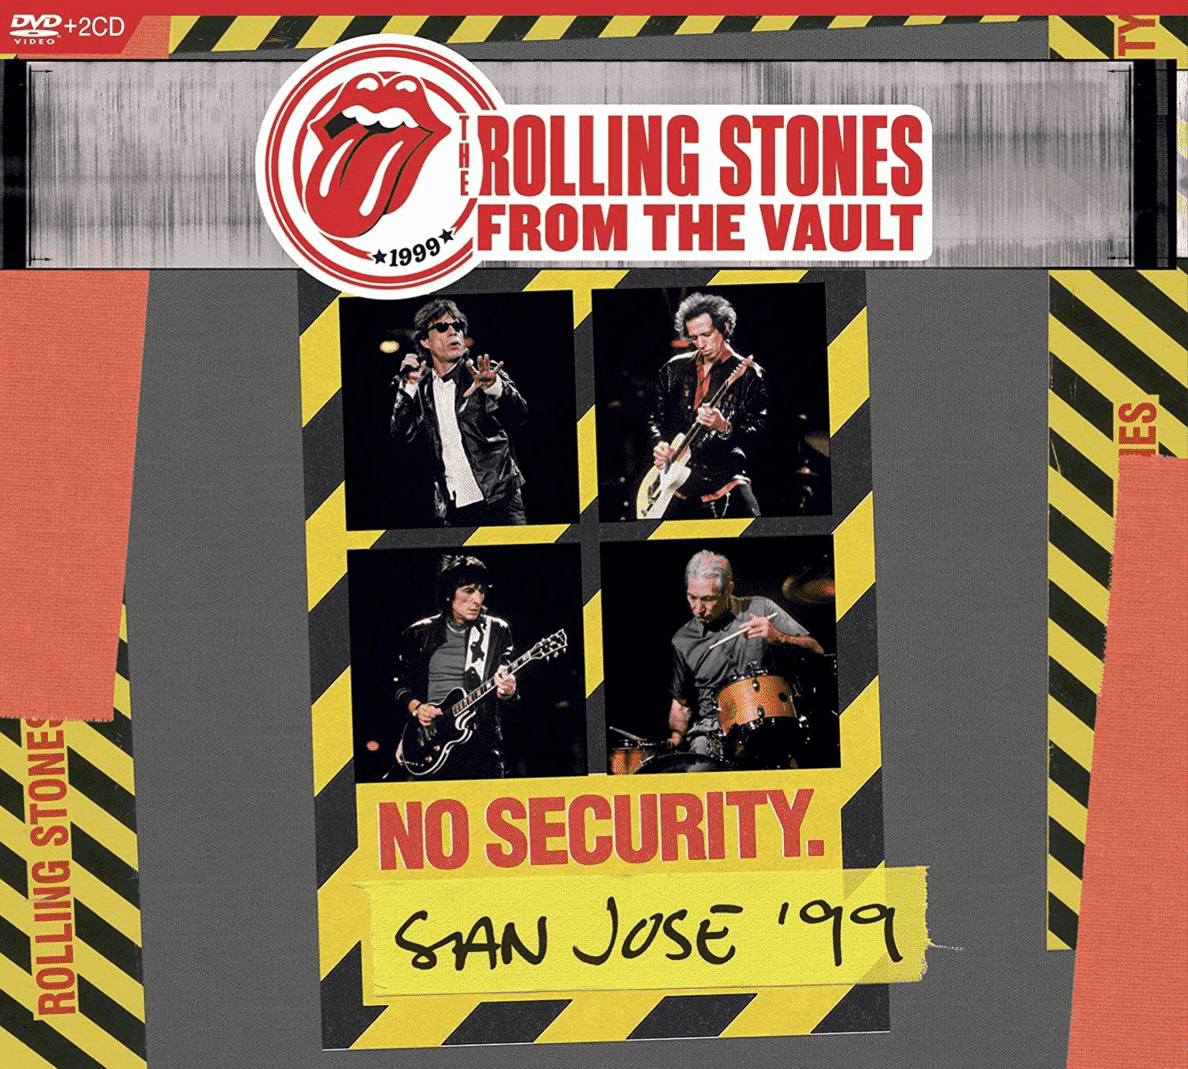 From The Vault: No Security-San Jose 1999 (+2CD) The Rolling Stones auf DVD + CD